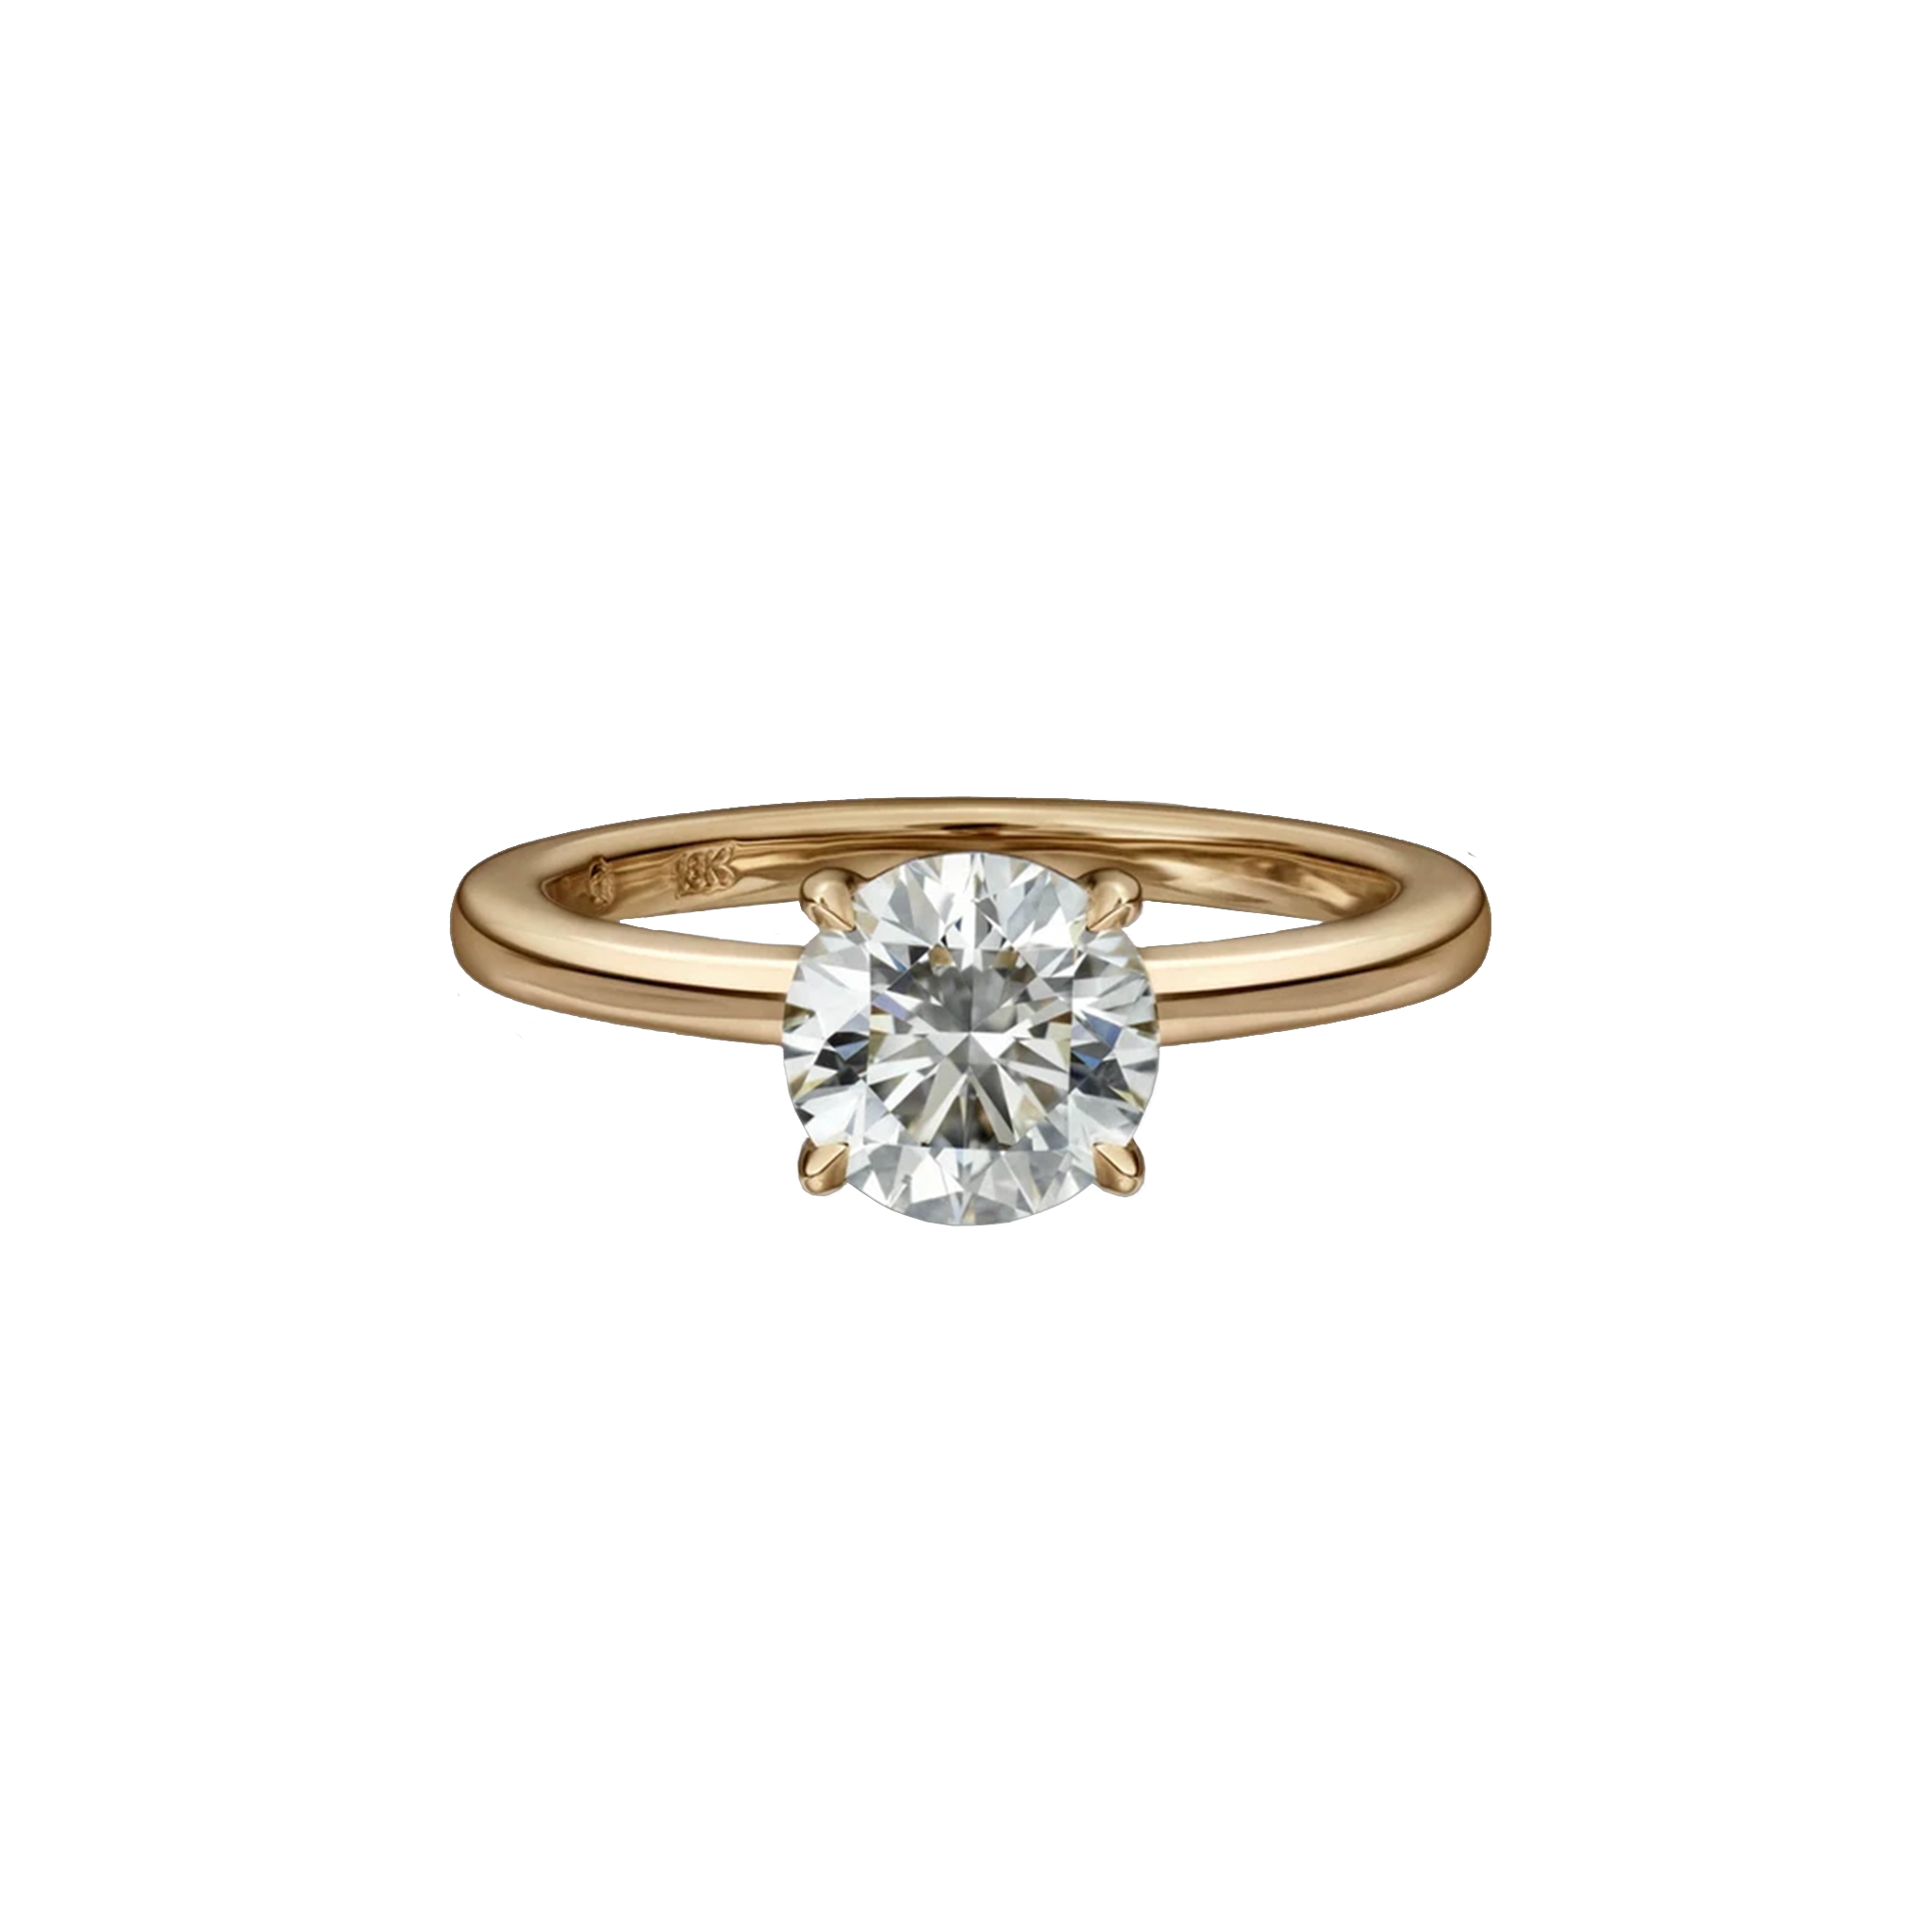 1.22 Carat Round Brilliant Cut Solitaire Engagement Ring